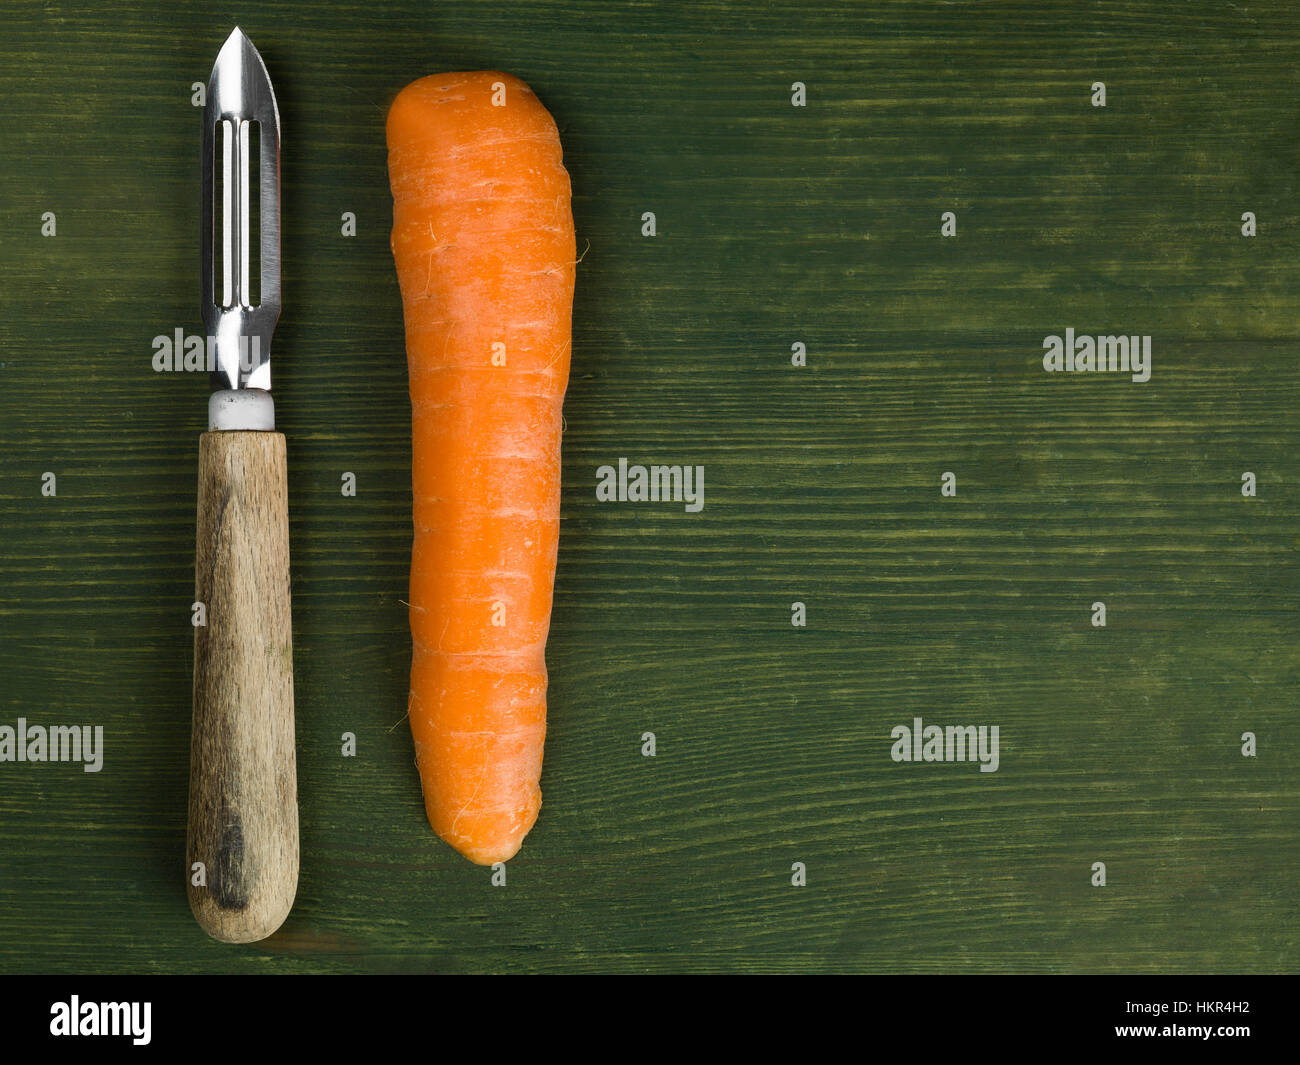 Raw Uncooked Organic Carrots With a Wooden Handled Vegetable Peeler - Stock Image